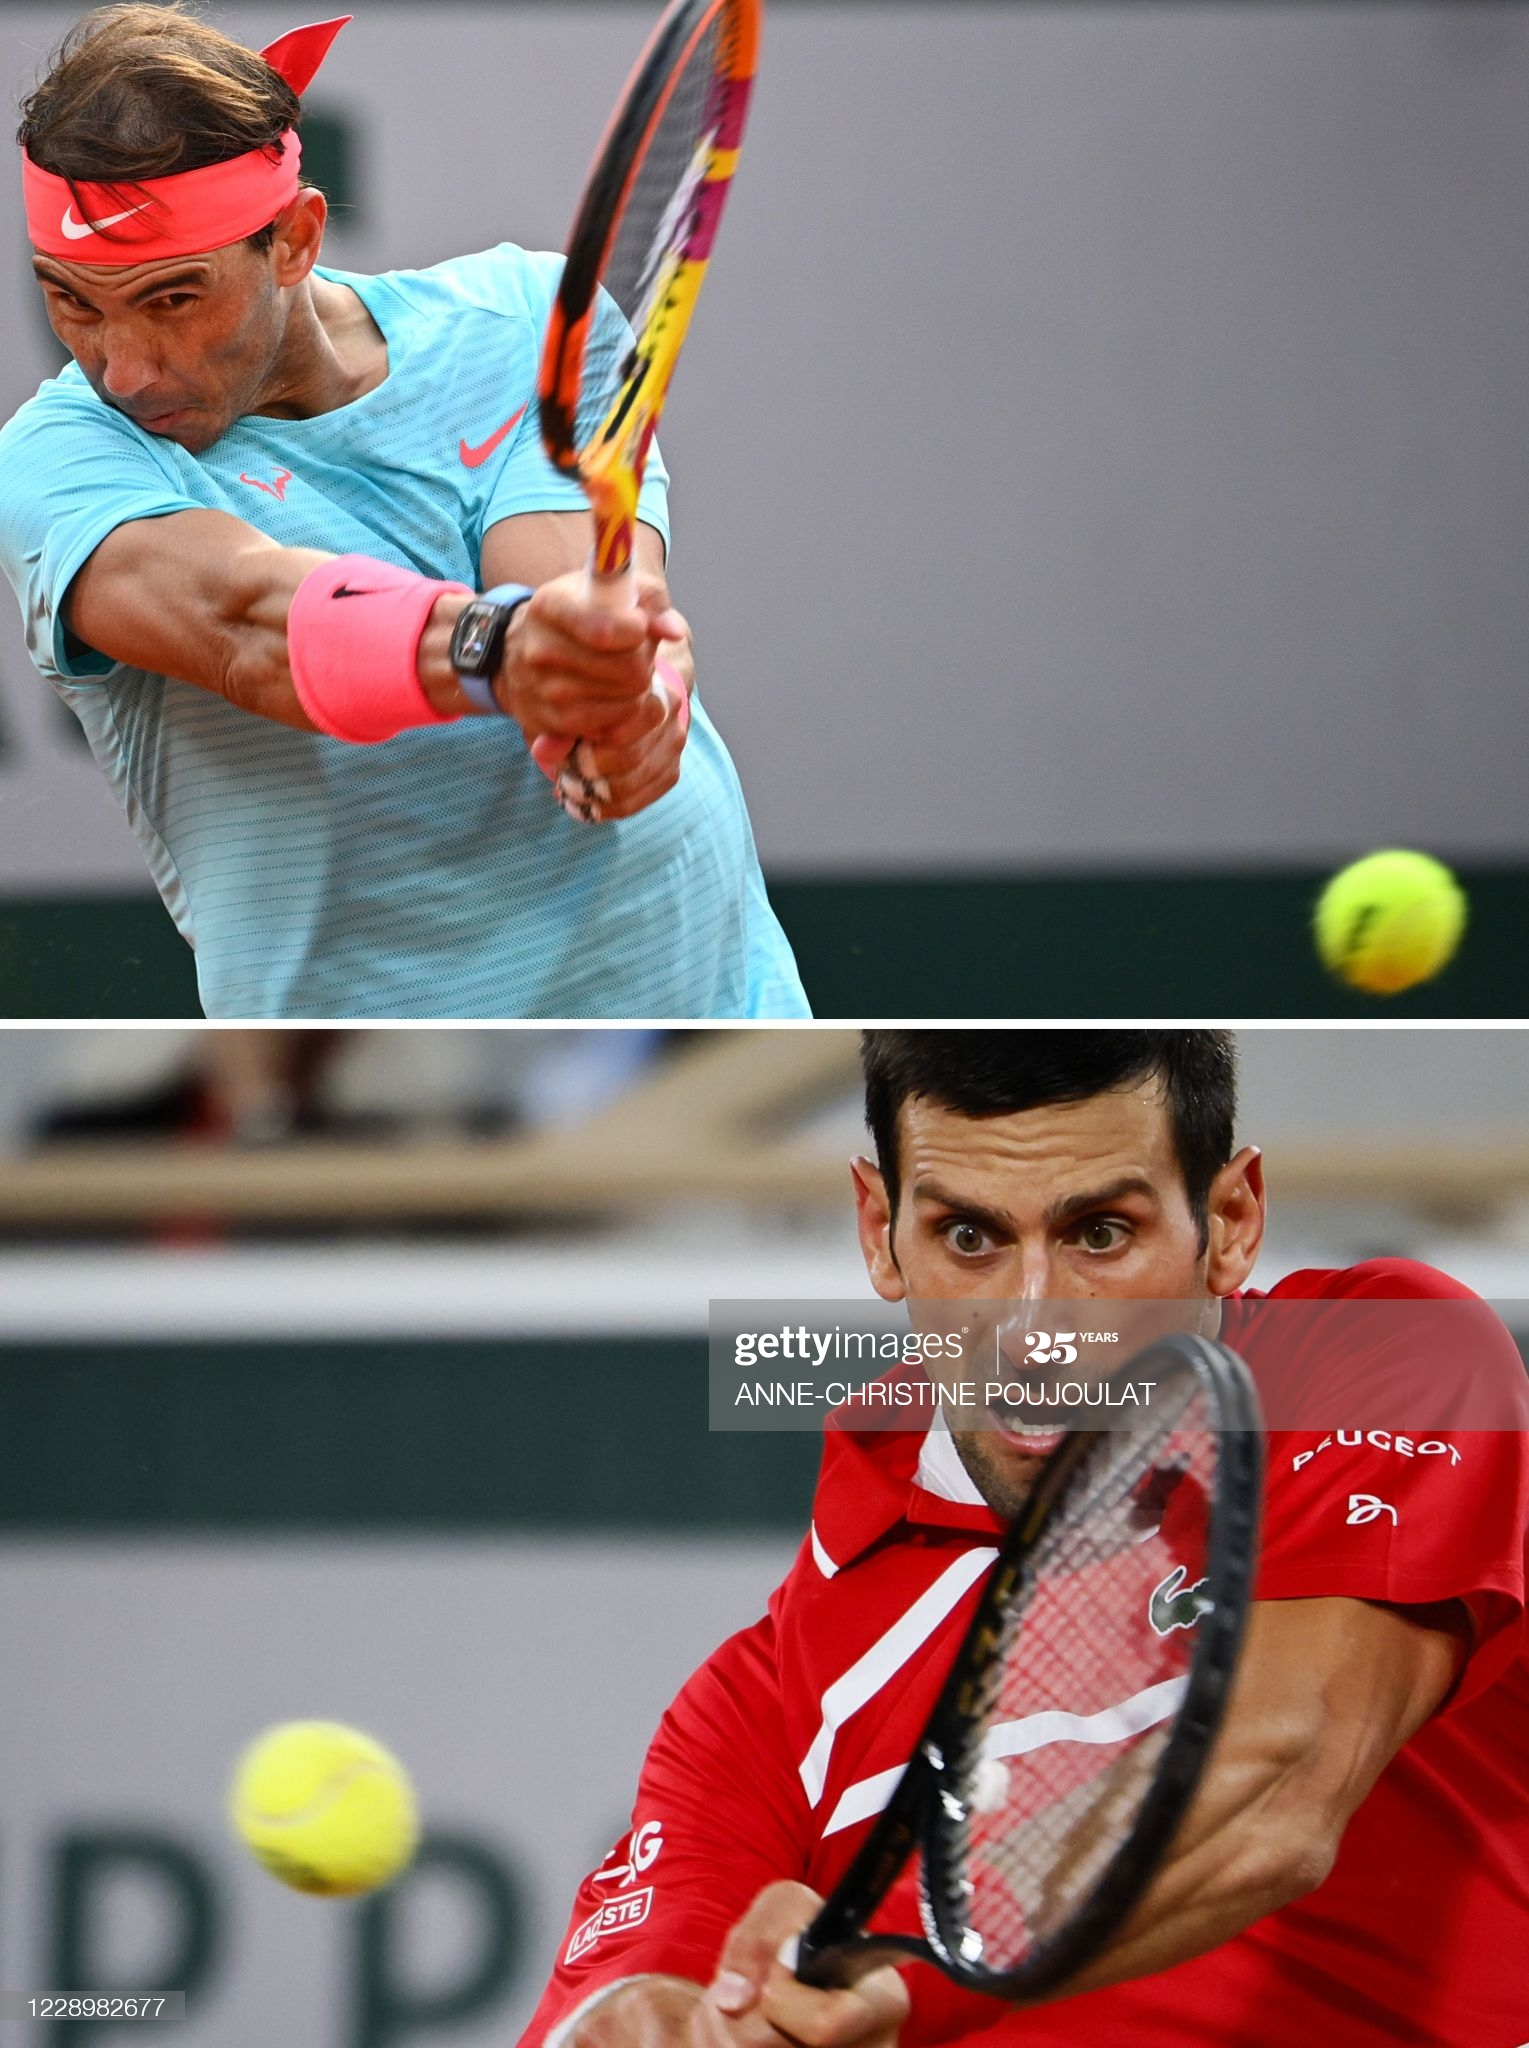 rafa and nole day 13 french open 2020.12